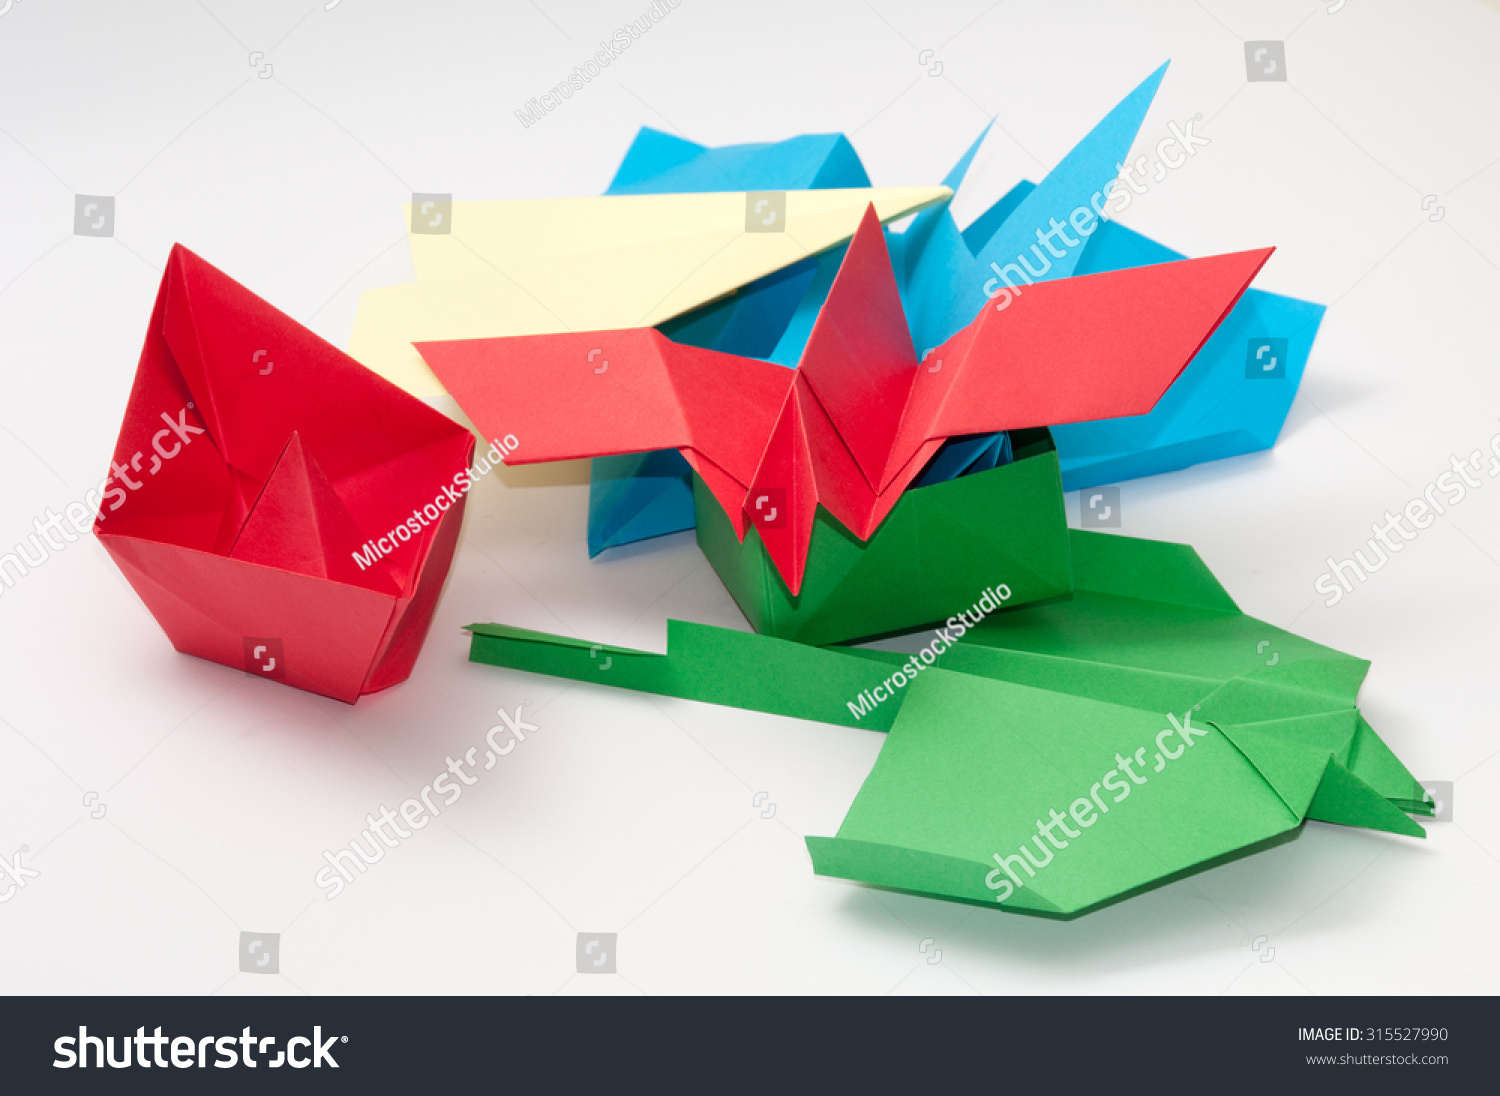 Pile bunch origami objects plane boat stock photo 315527990 pile bunch origami objects plane boat jeuxipadfo Choice Image